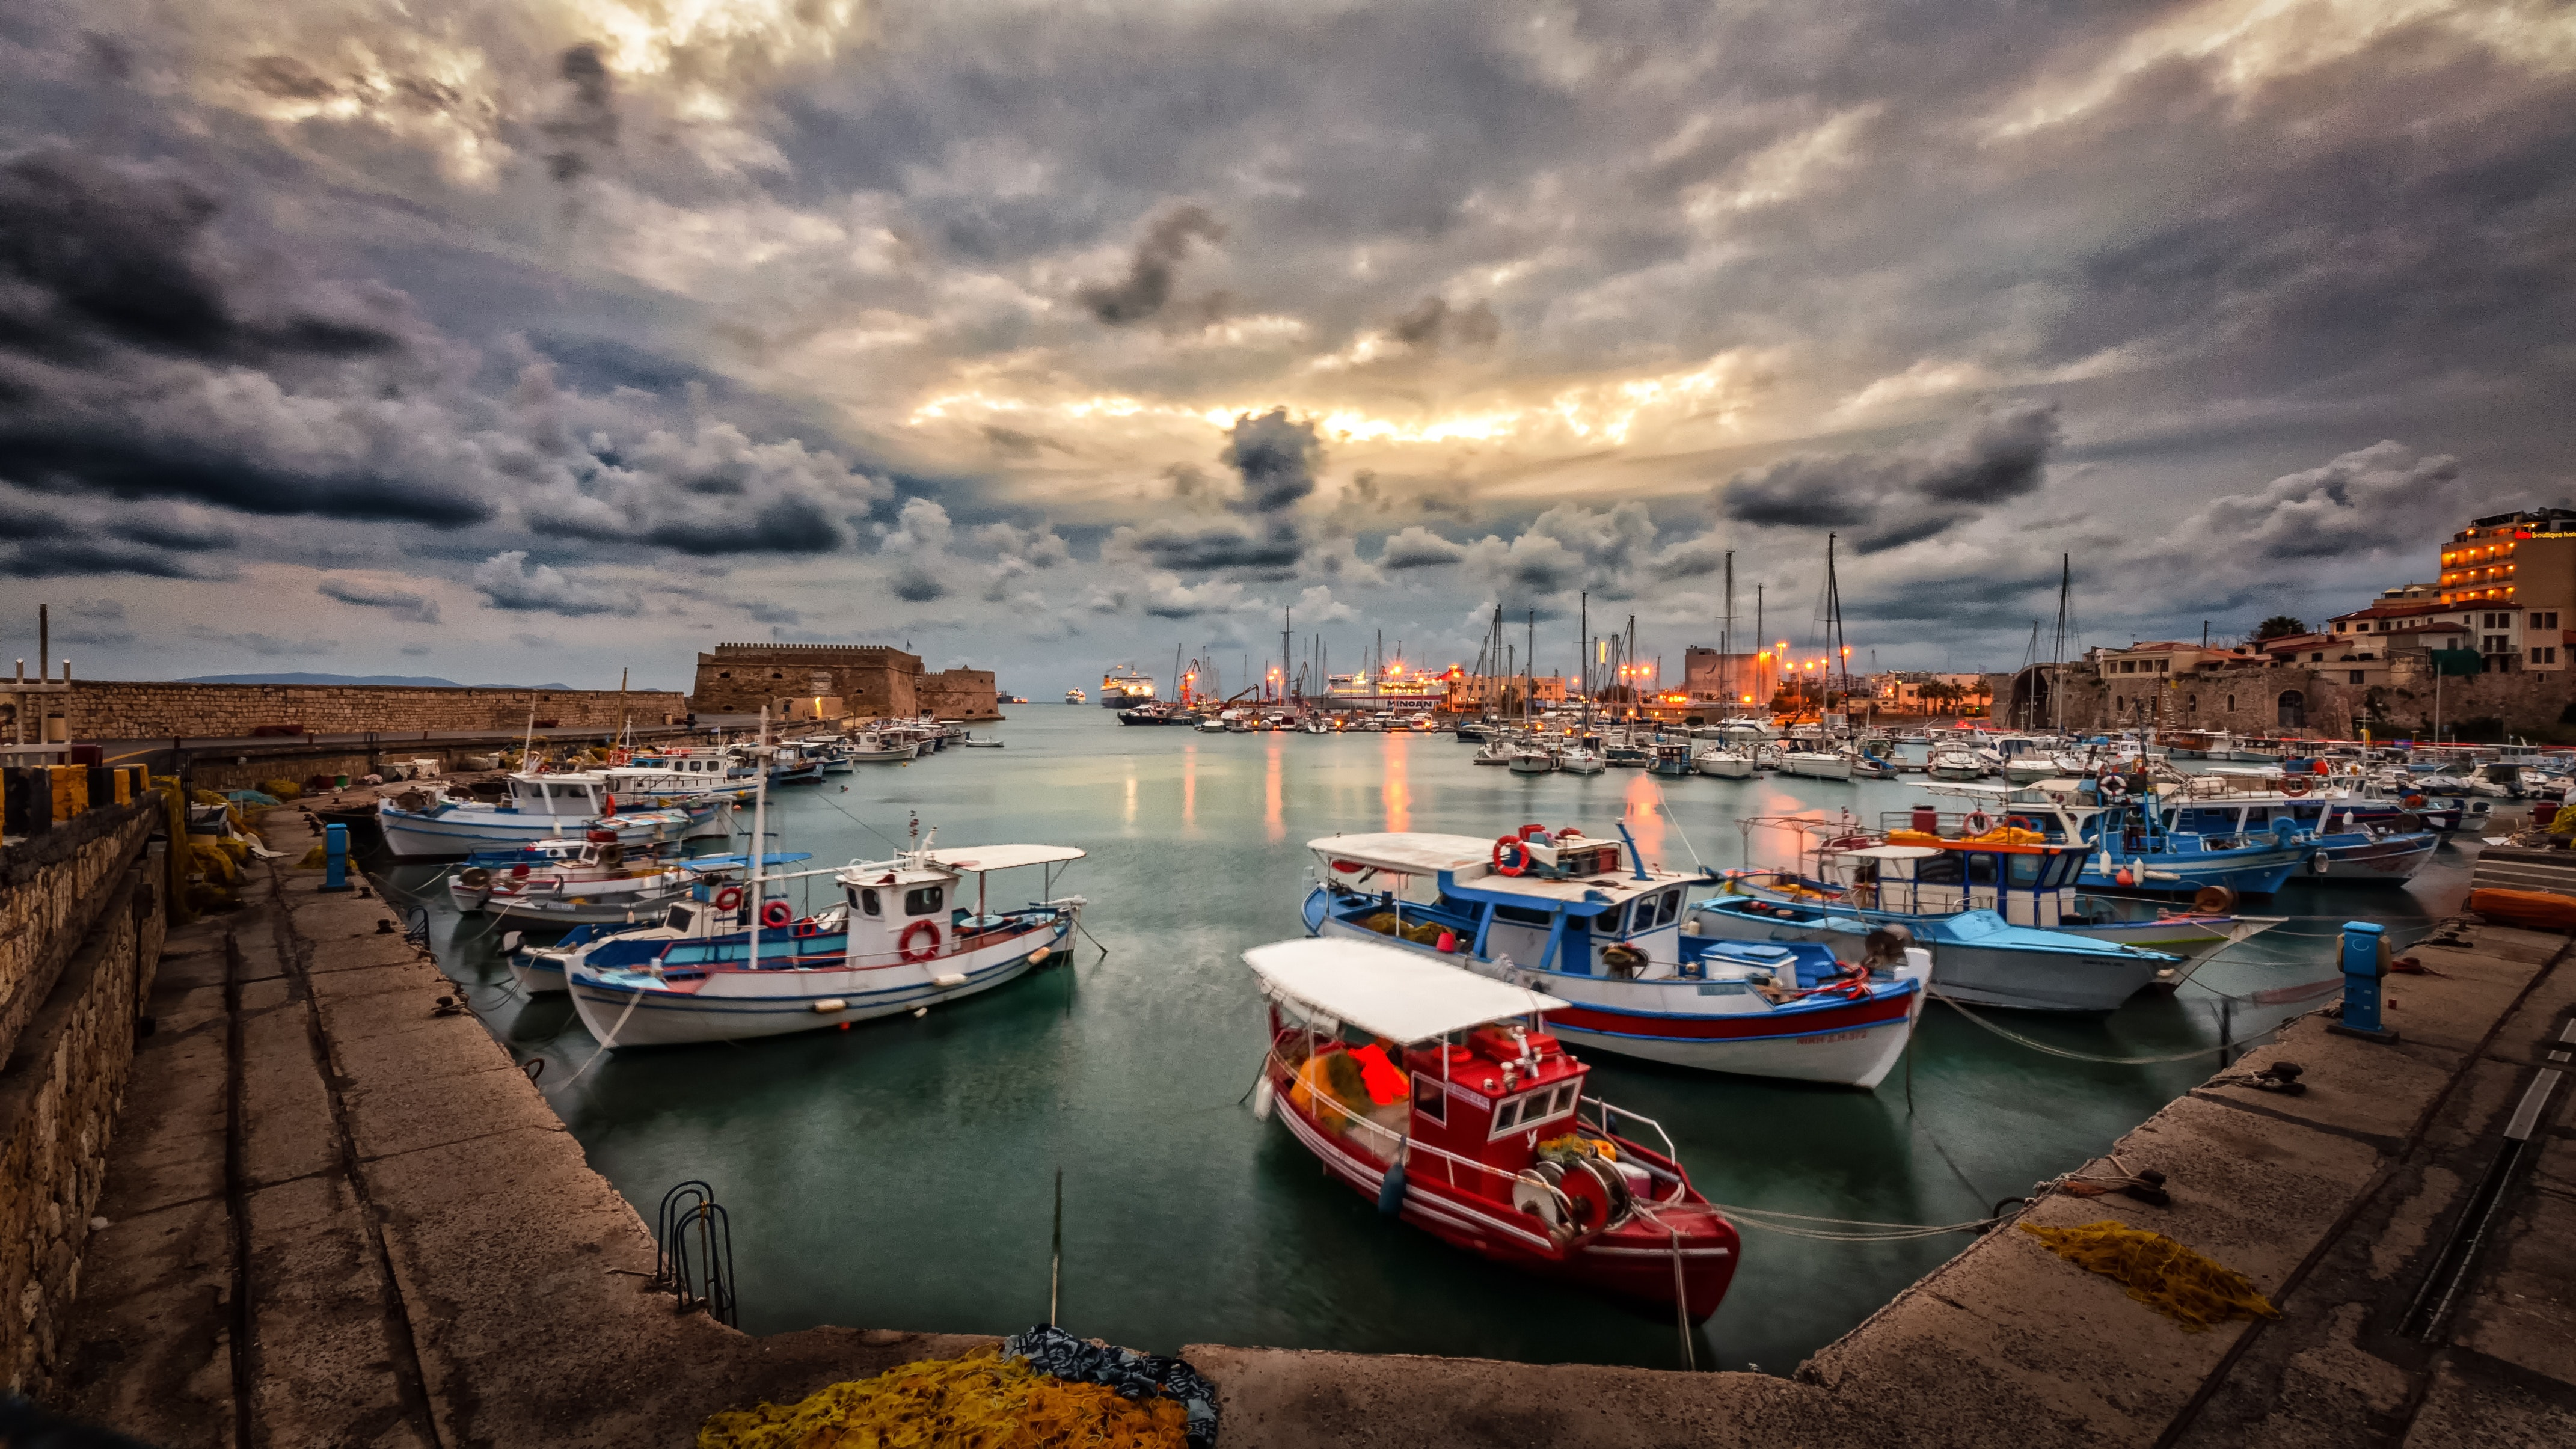 Assorted Fishing Boats, Architecture, Pier, Waterfront, Watercrafts, HQ Photo